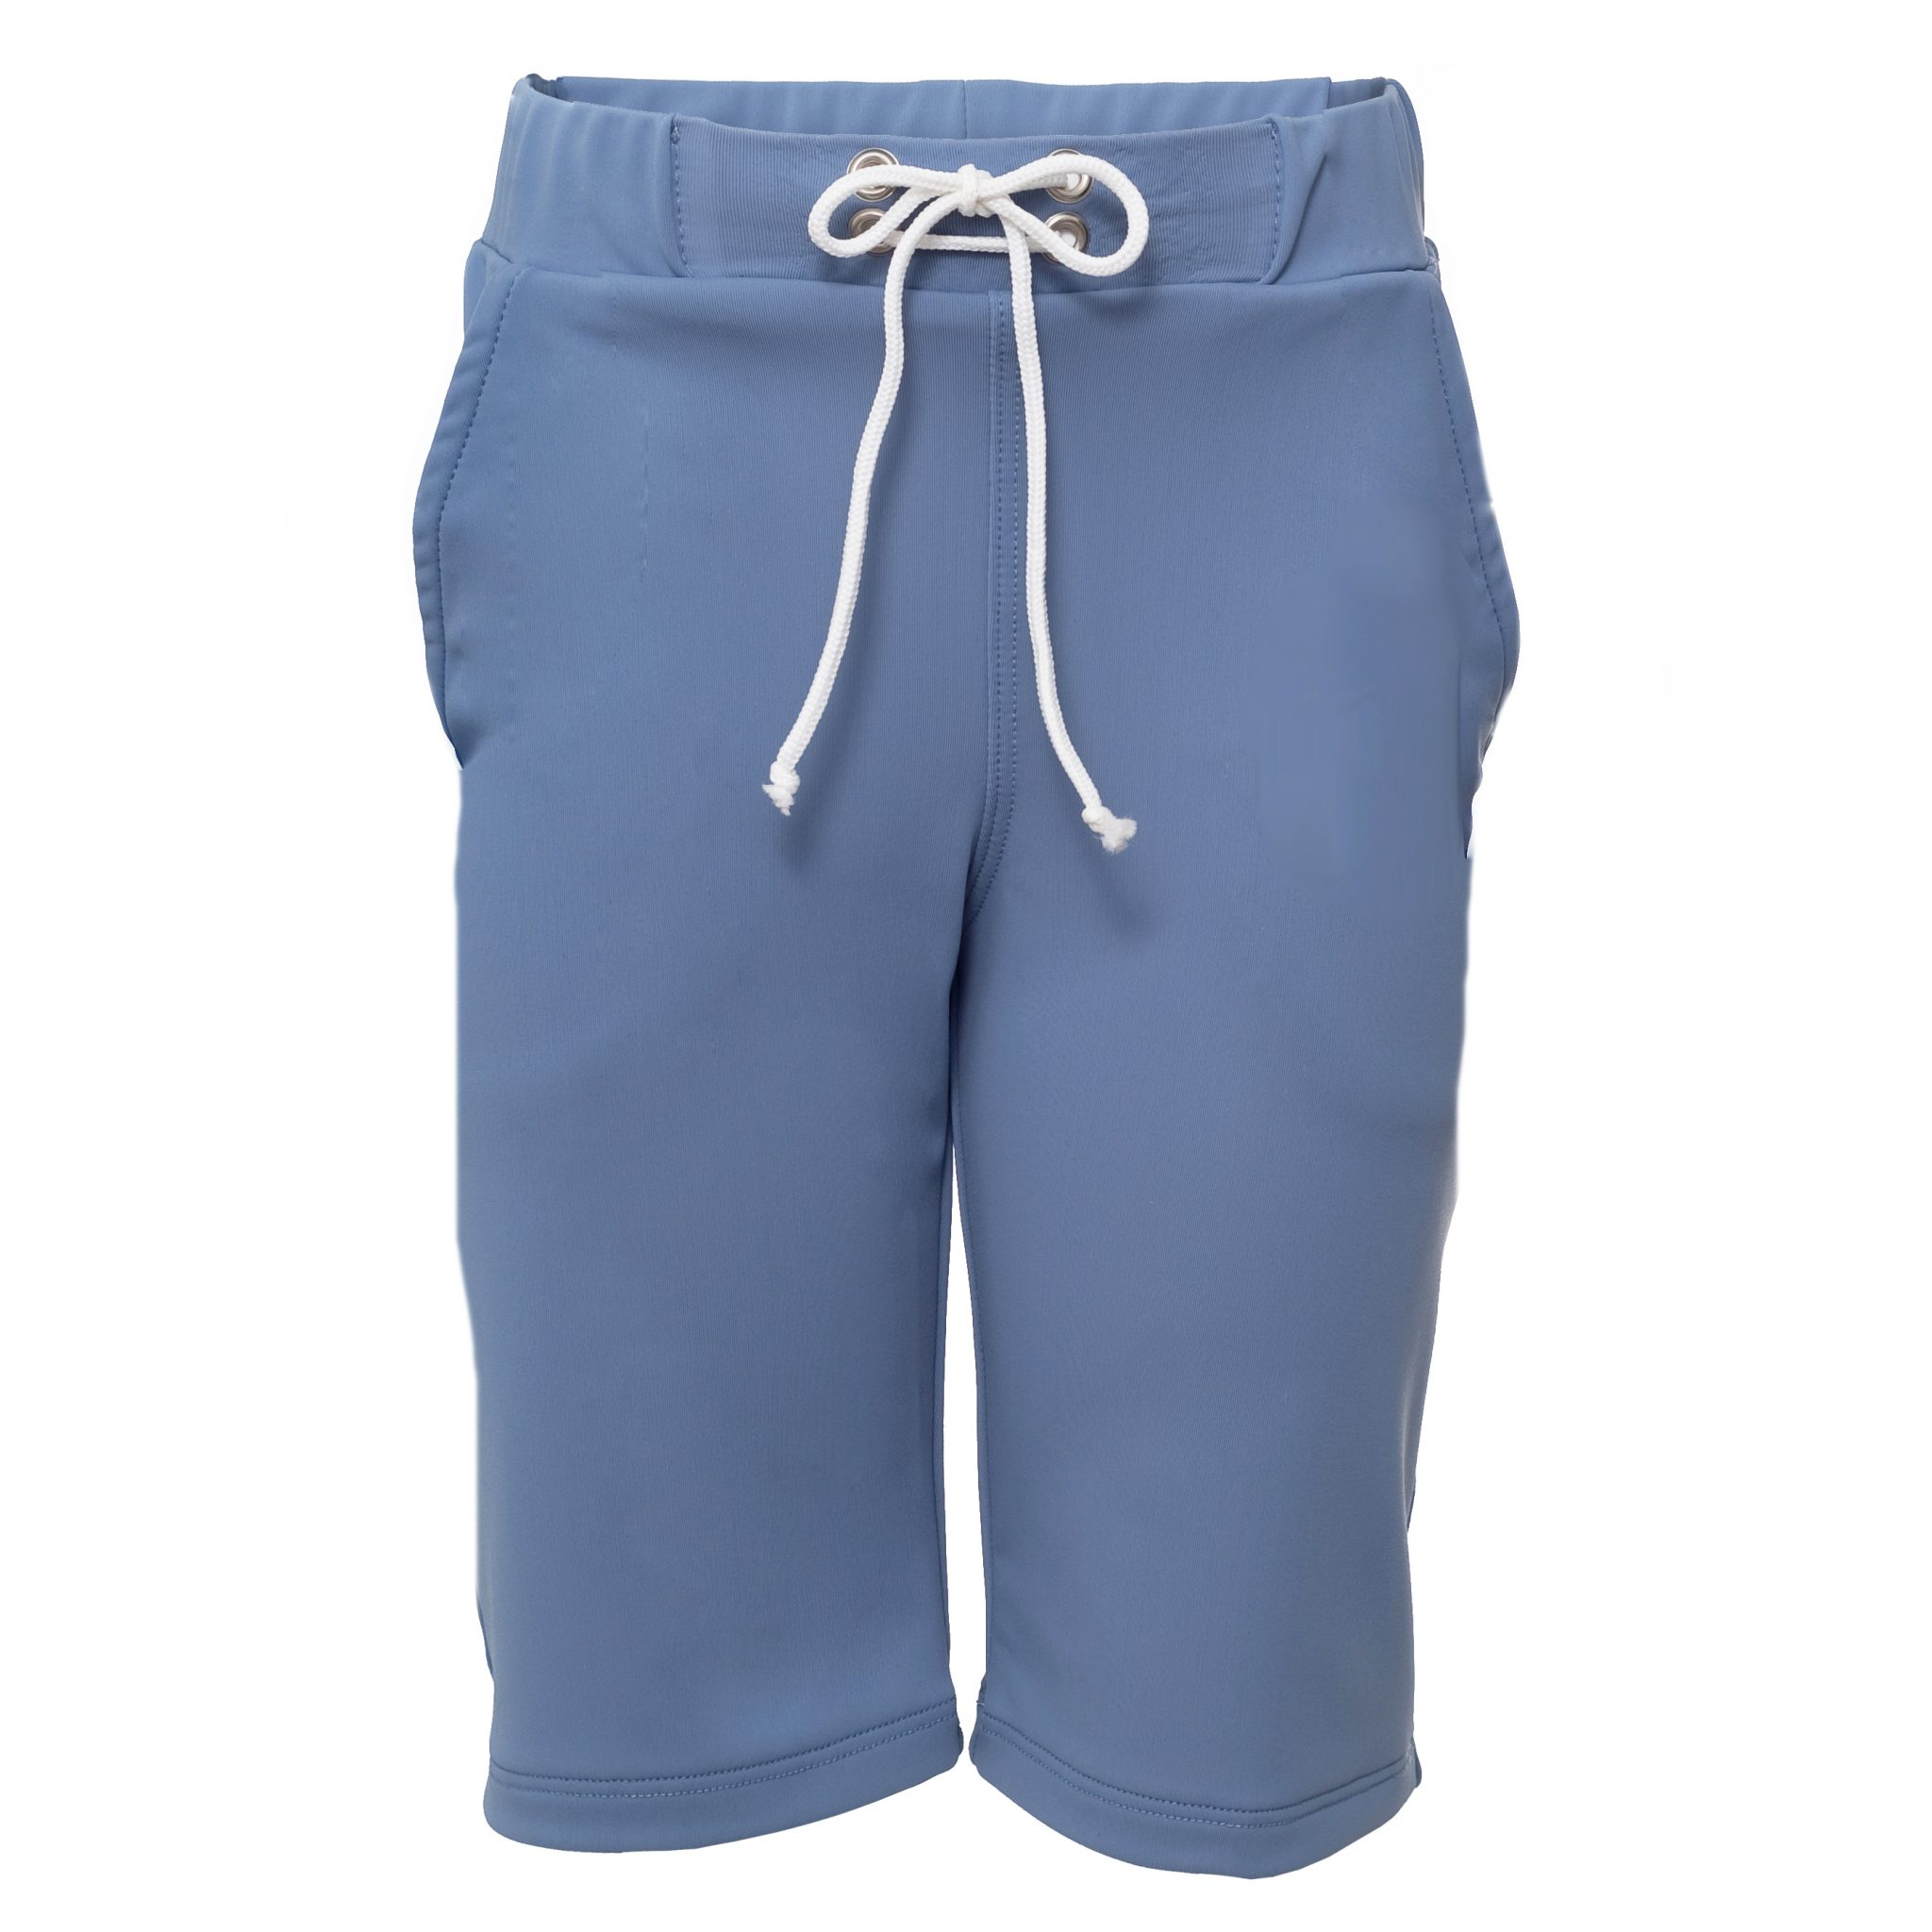 Petit Crabe petrol blue long swim trunks shorts with pockets for boys. UV sun protective swimwear for kids.